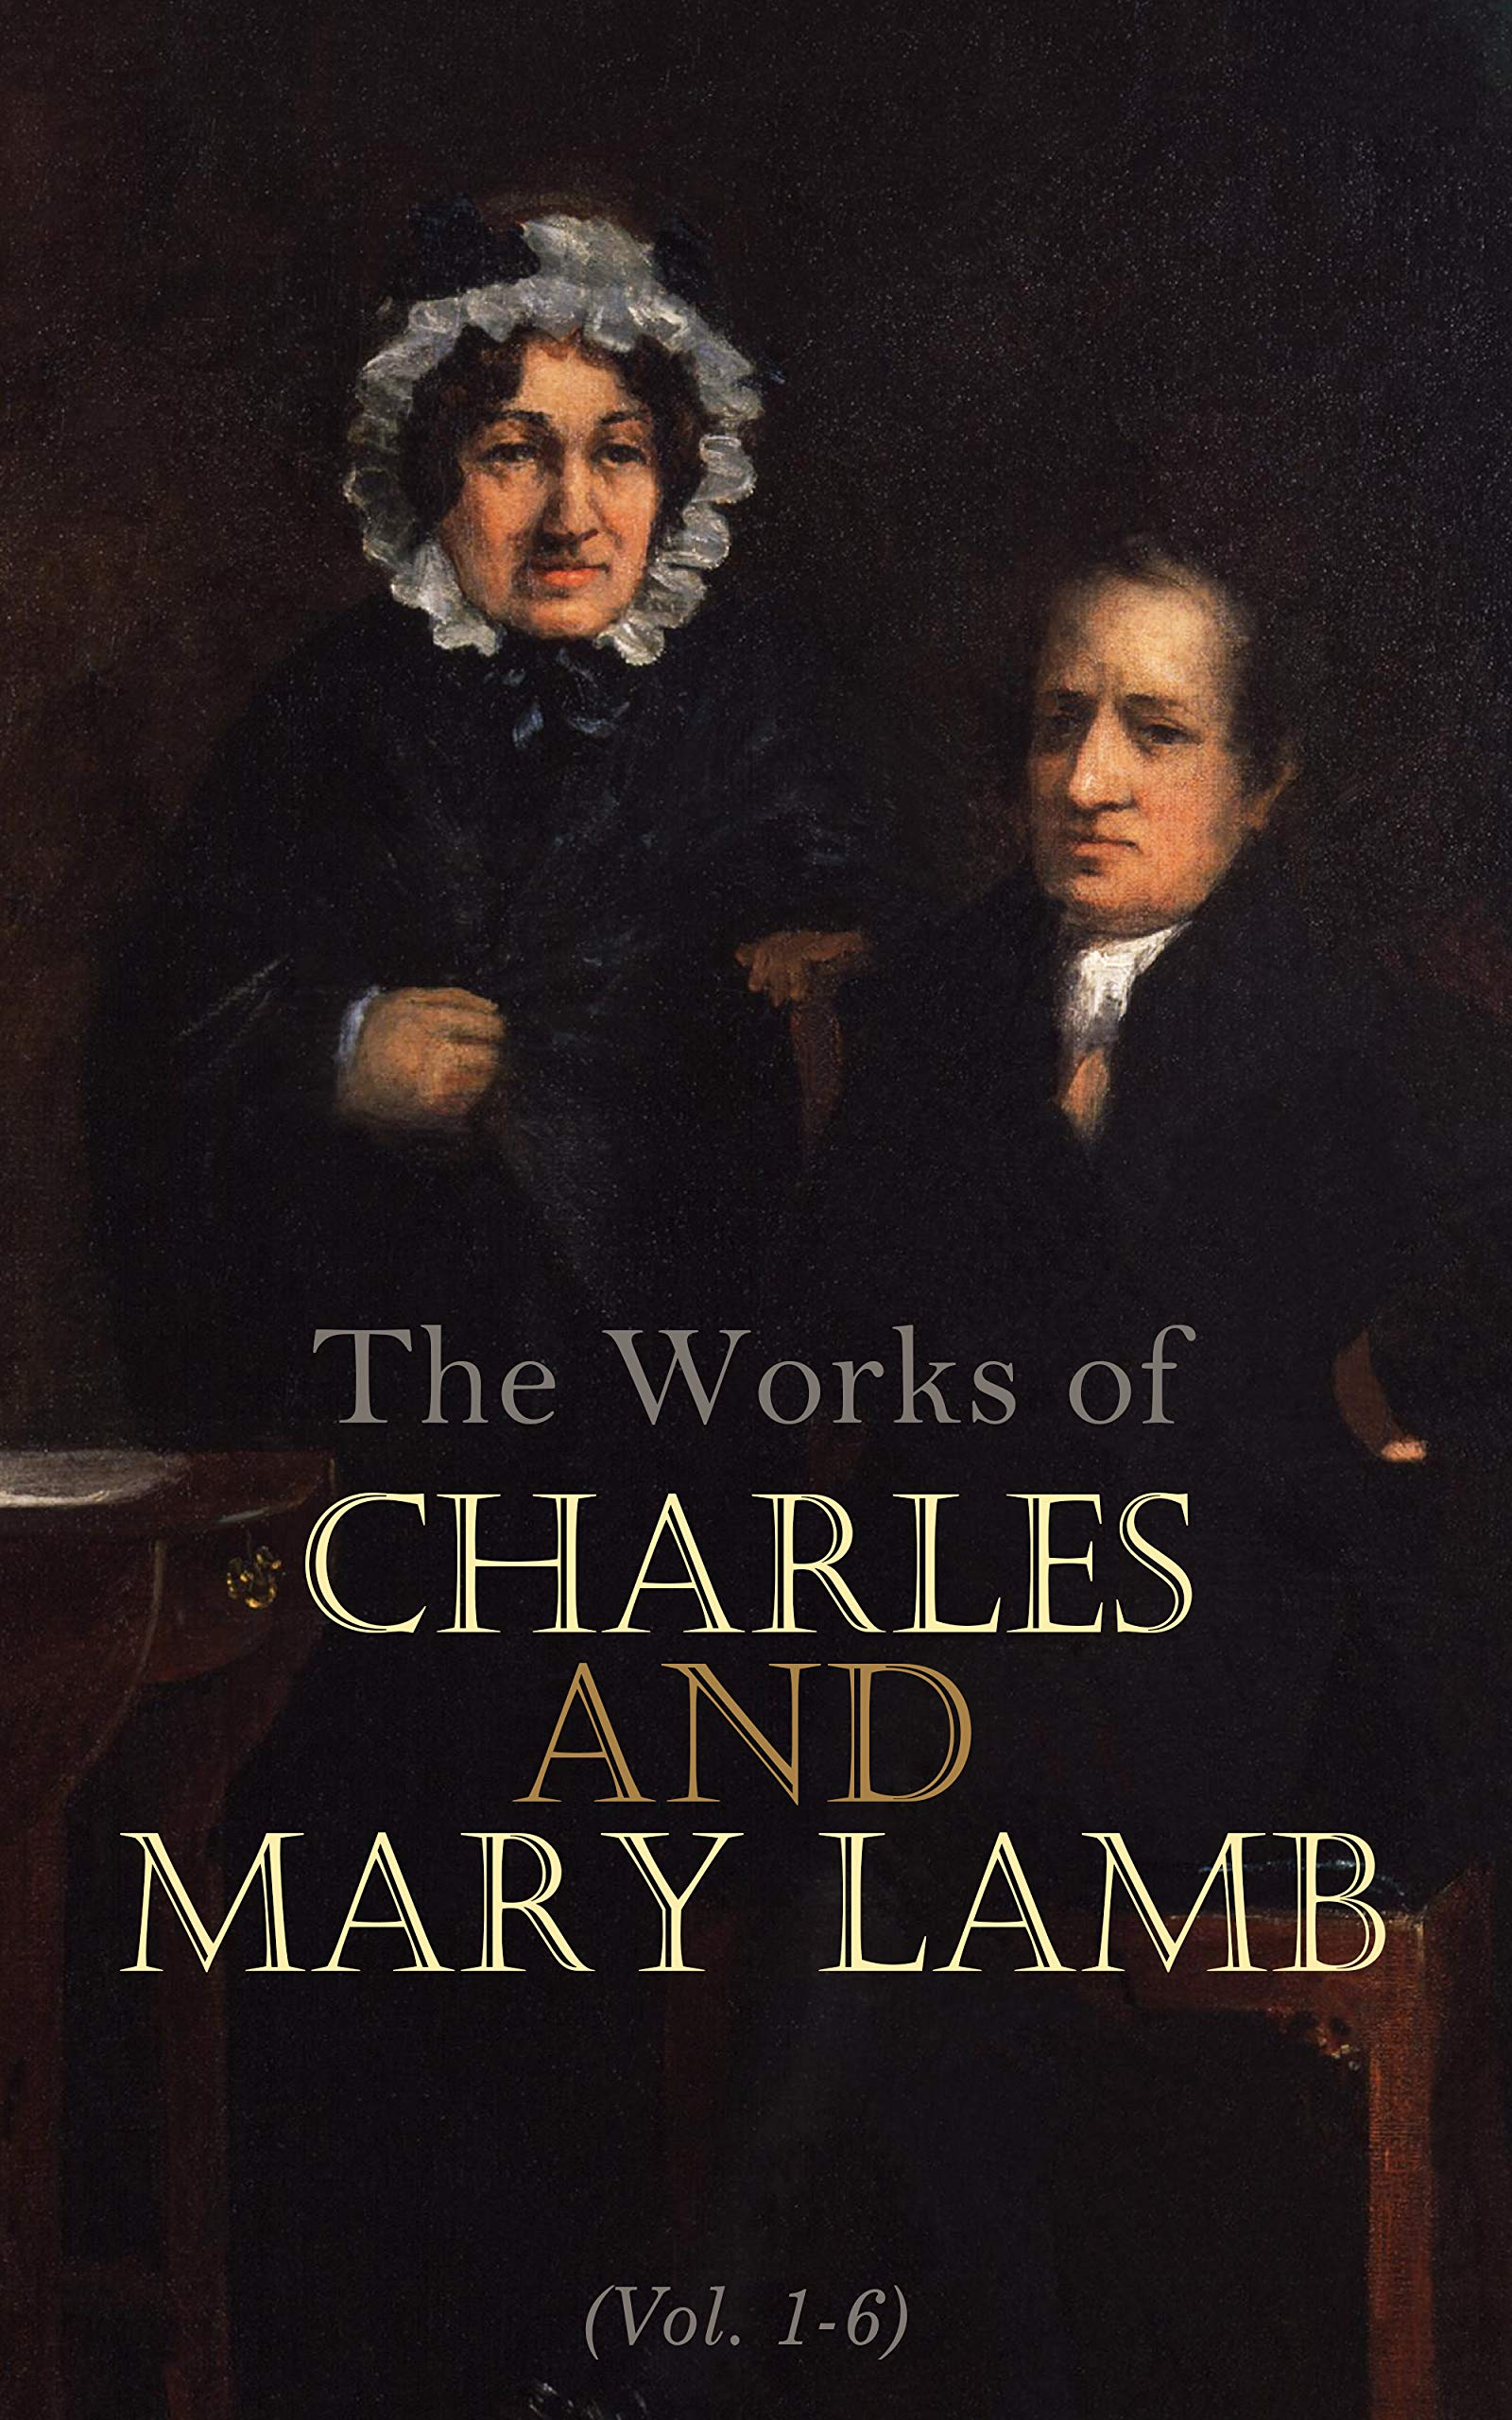 The Works of Charles and Mary Lamb (Vol. 1-6): Complete Edition: Tales from Shakespeare, Essays of Elia, The Adventures of Ulysses, The King and Queen of Hearts, Poetry for Children, Letters